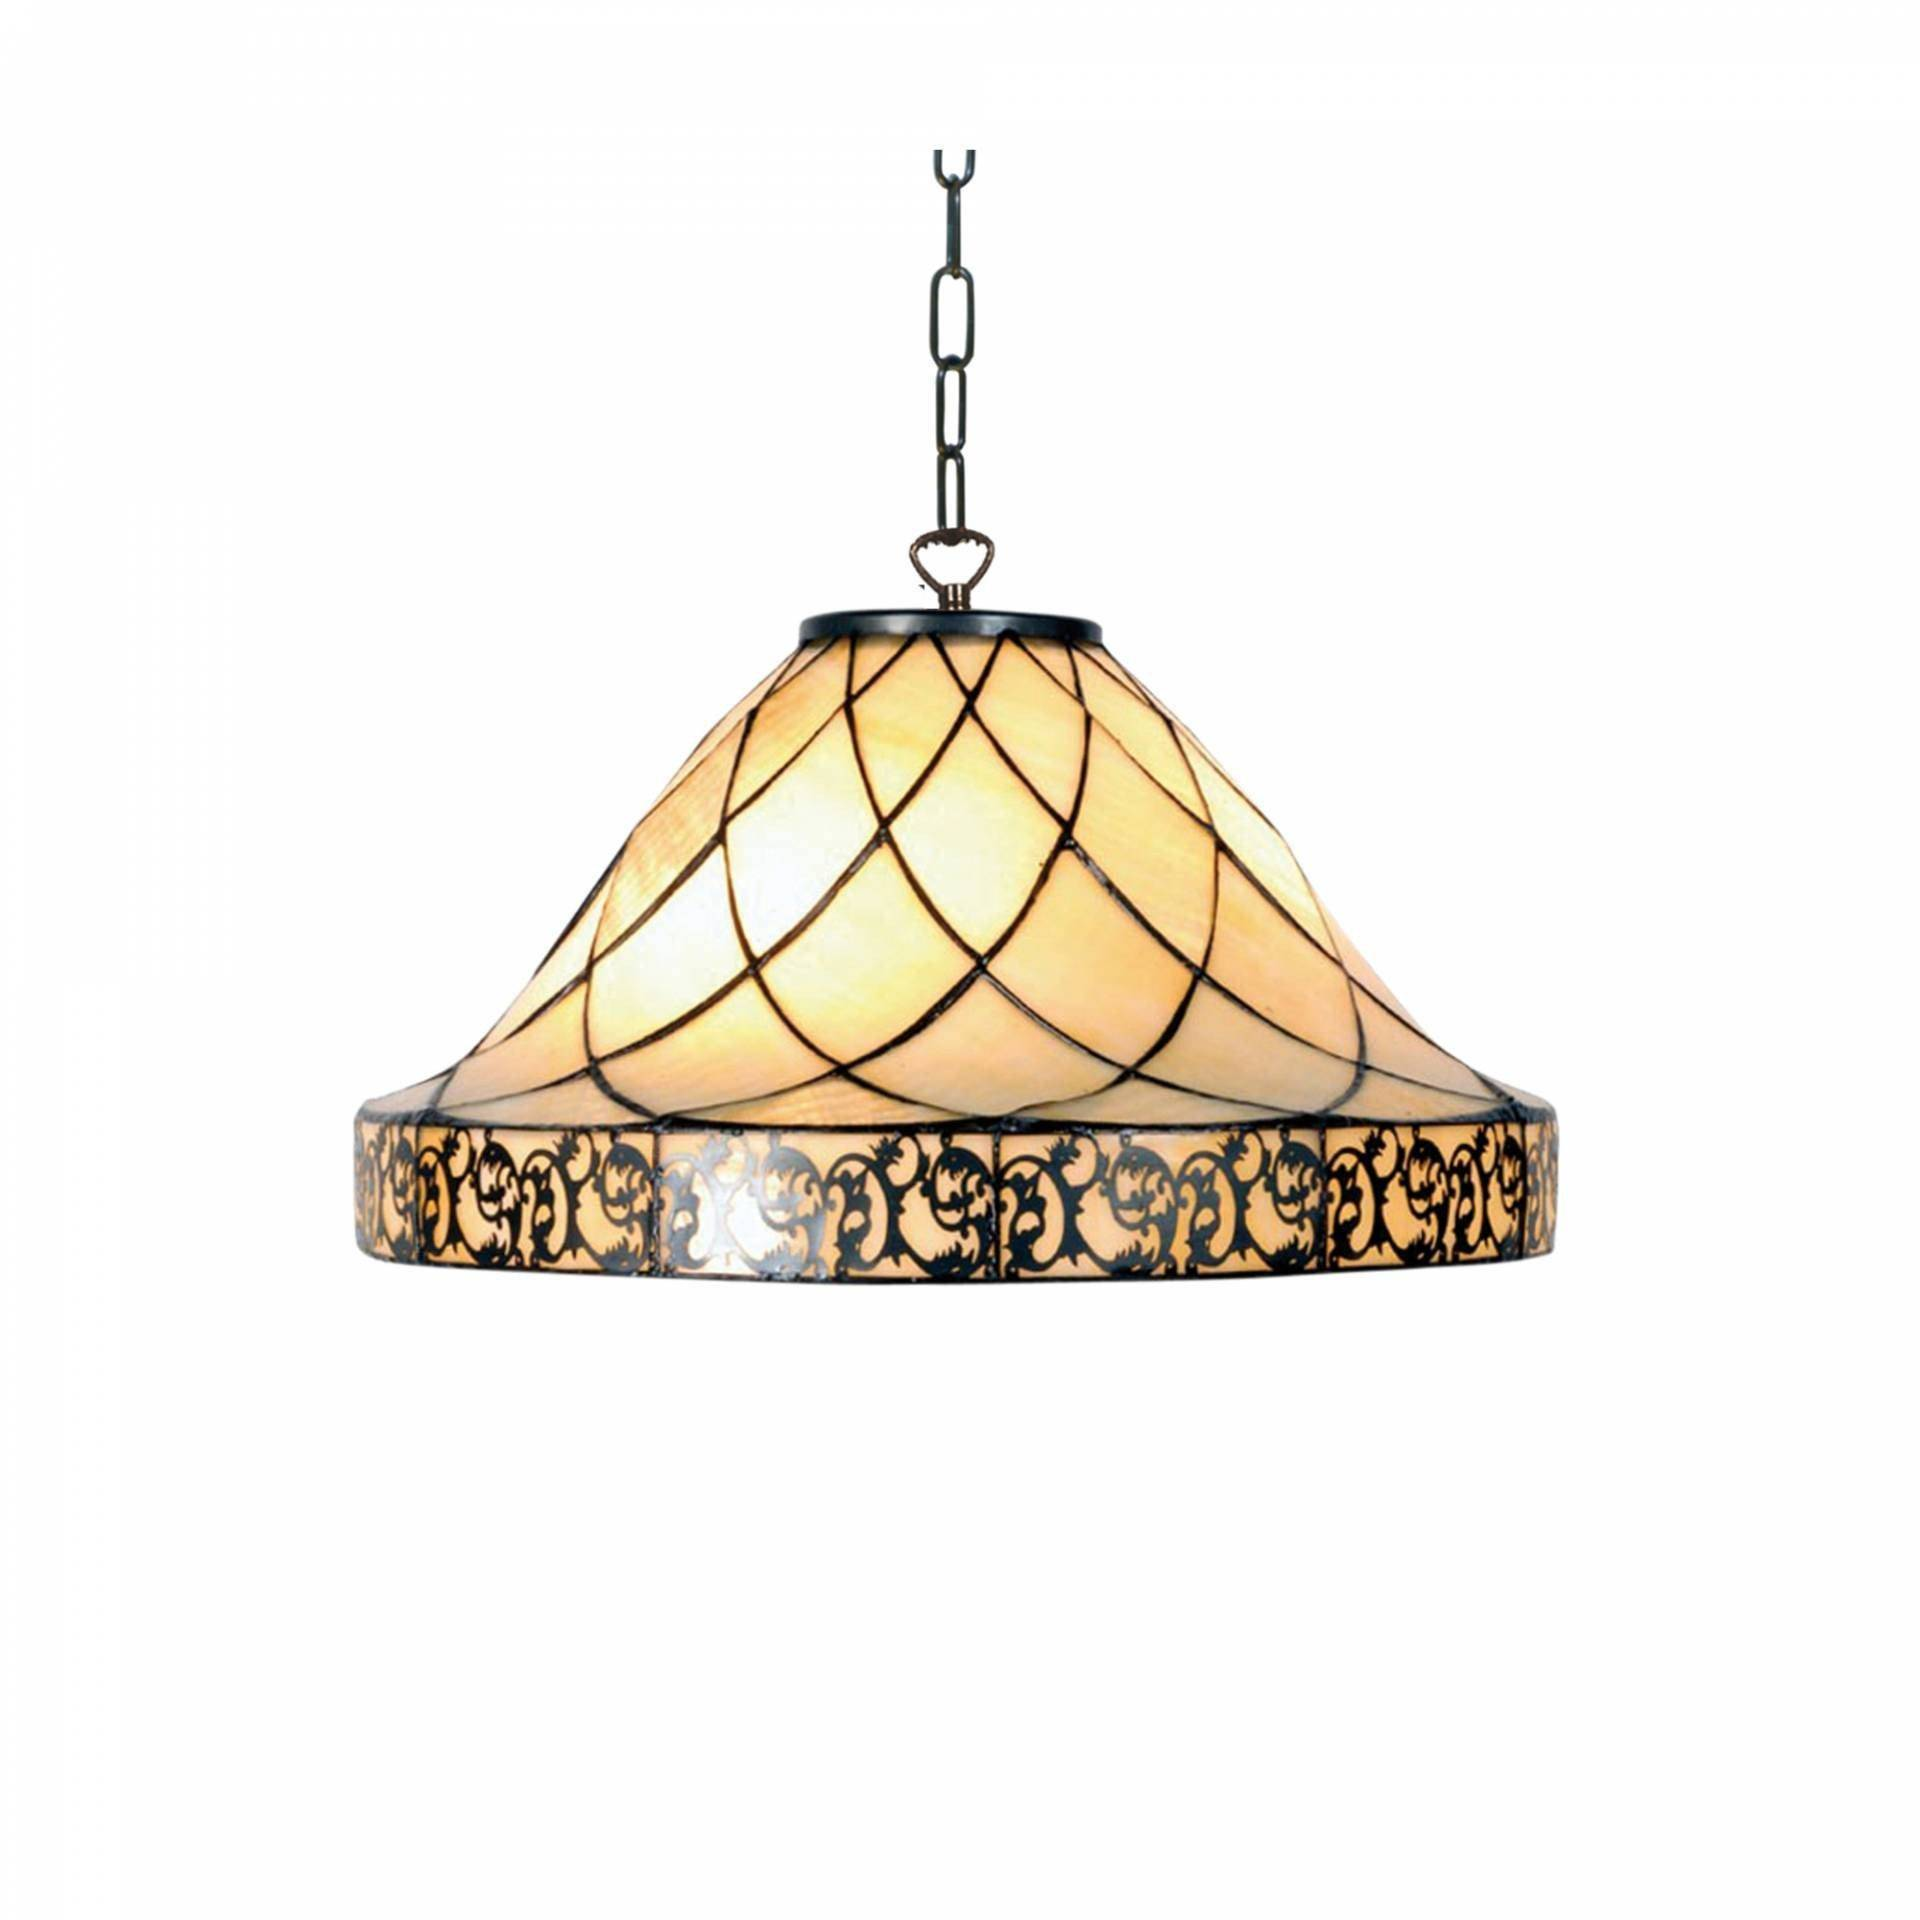 Tiffany Lamps ceiling light sale